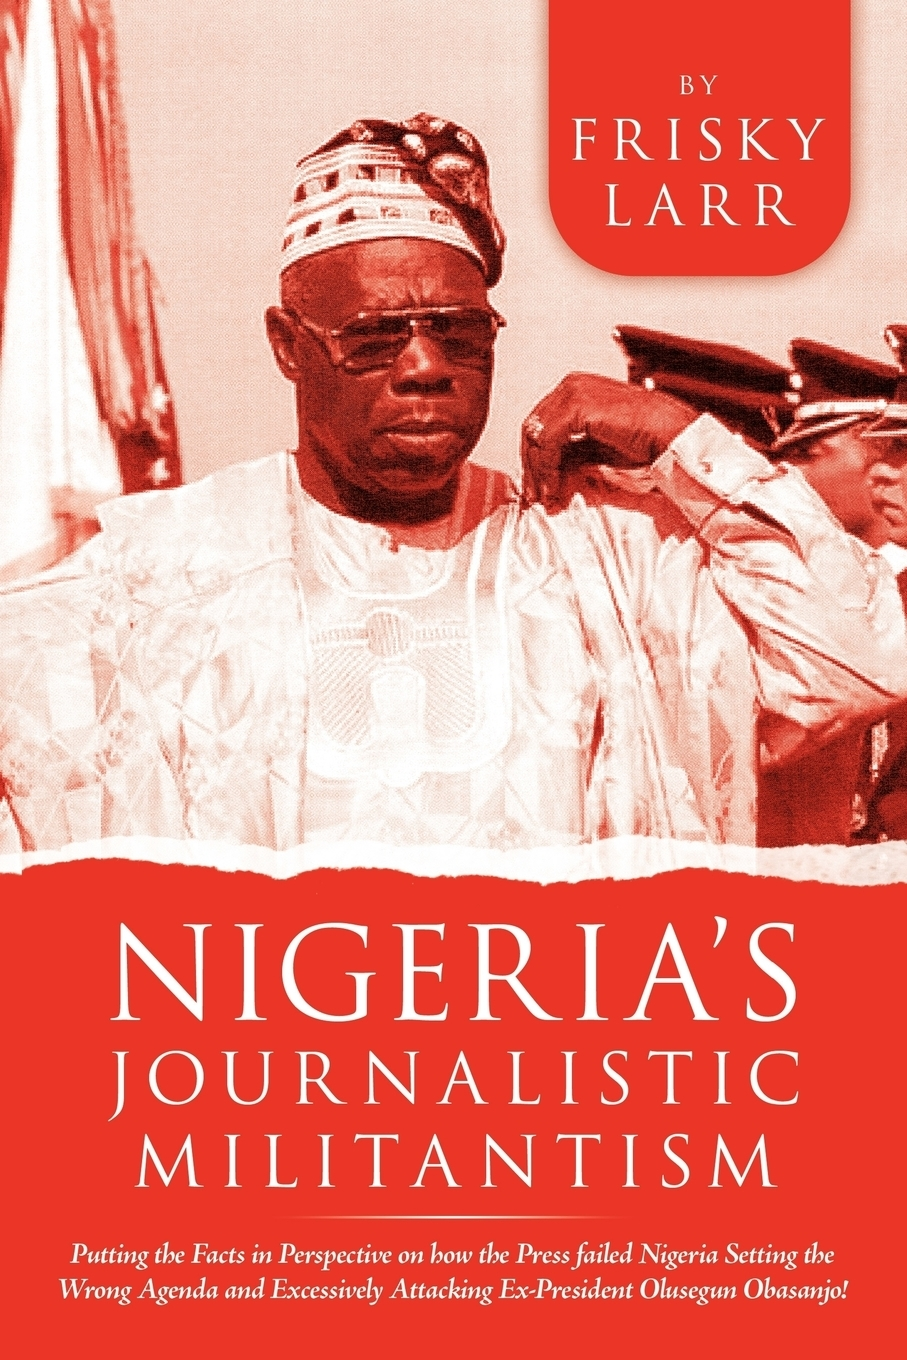 Frisky Larr. Nigeria's Journalistic Militantism. Putting the Facts in Perspective on How the Press Failed Nigeria Setting the Wrong Agenda and Excessively Attackin